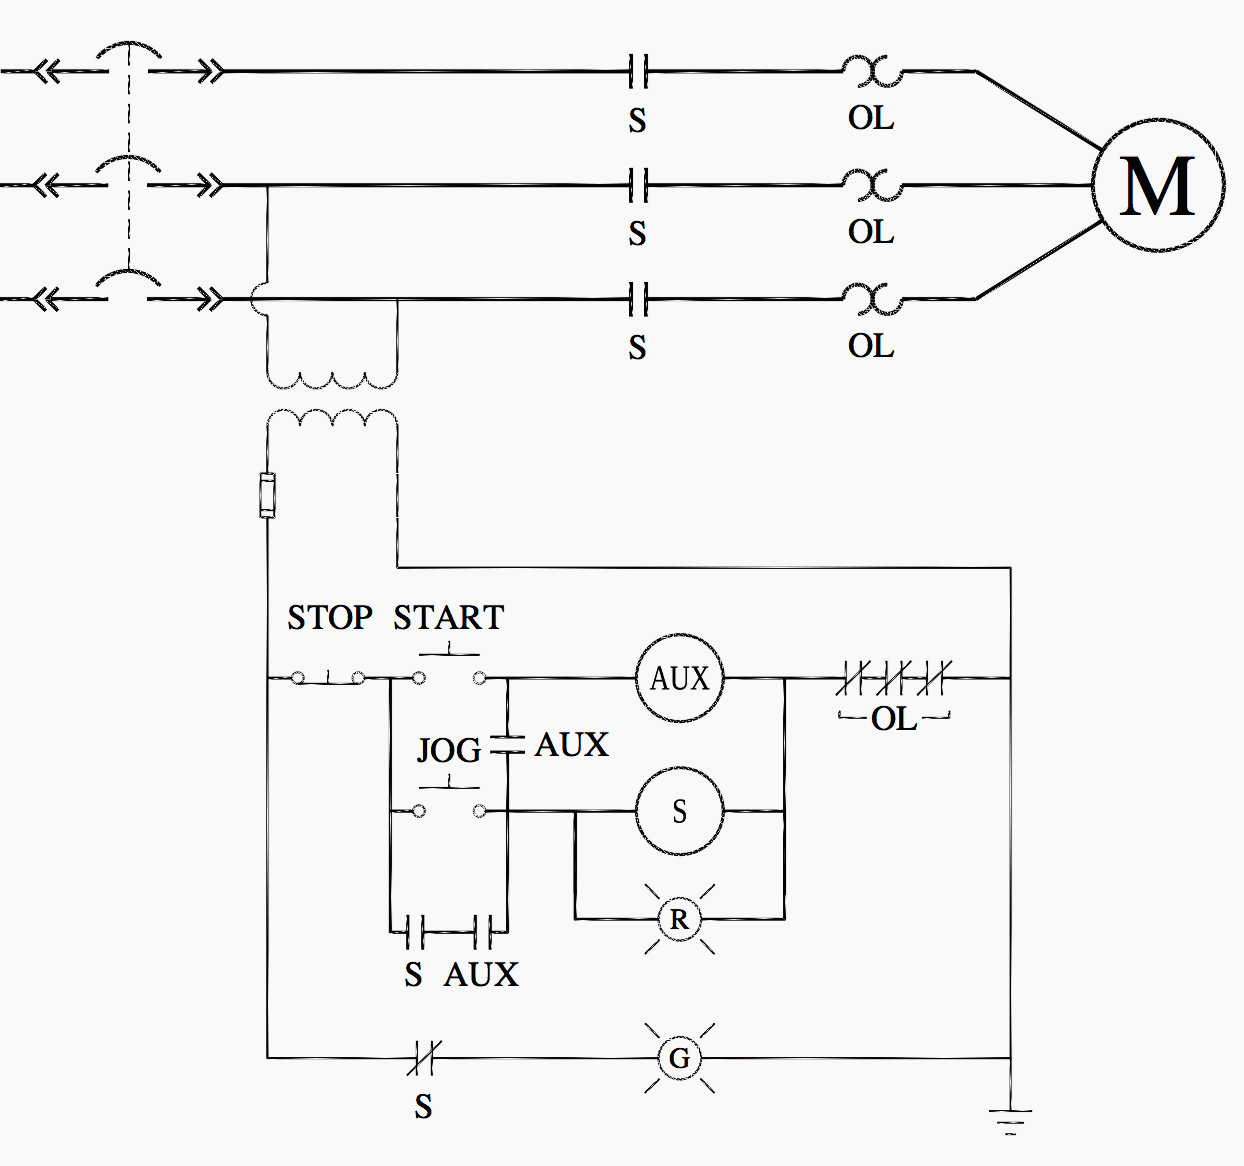 Jogging Timer Circuit Diagram Wiring Diagrams Simple Relay Logic Ladder For Special Motor Control Circuits And Rh Electrical Engineering Portal Com Ic